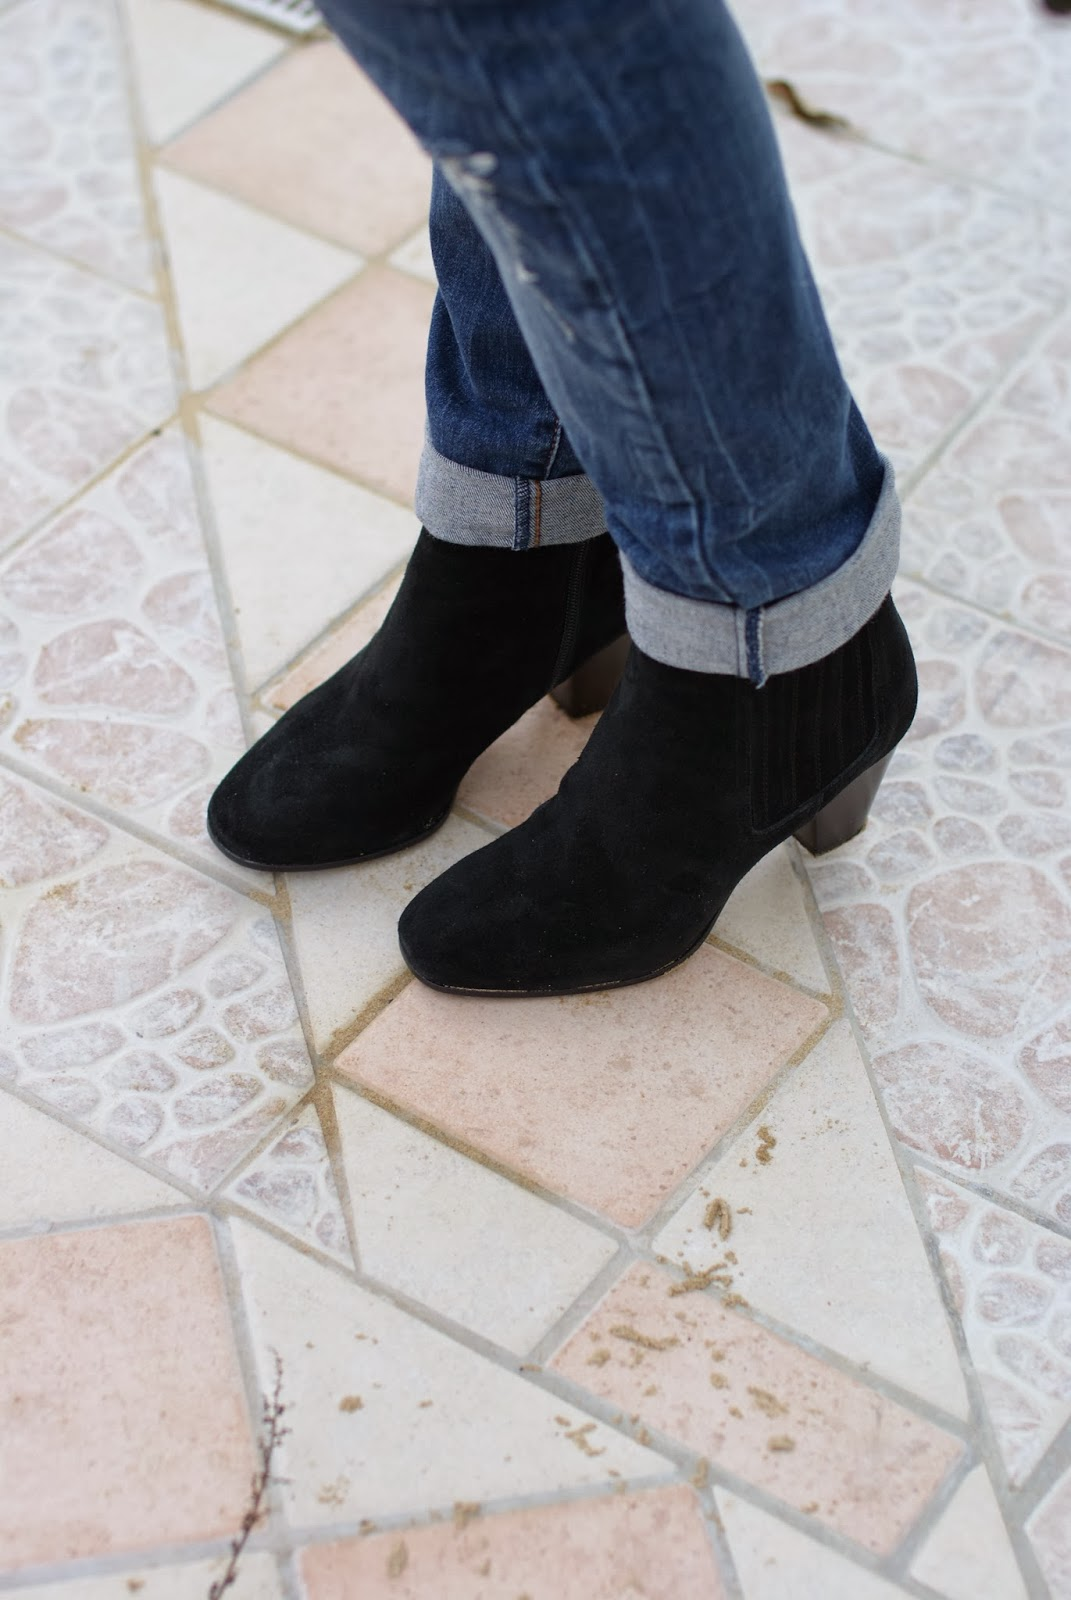 Isabel Marant dicker boots lookalikes, B&H shoes, Fashion and Cookies, fashion blogger